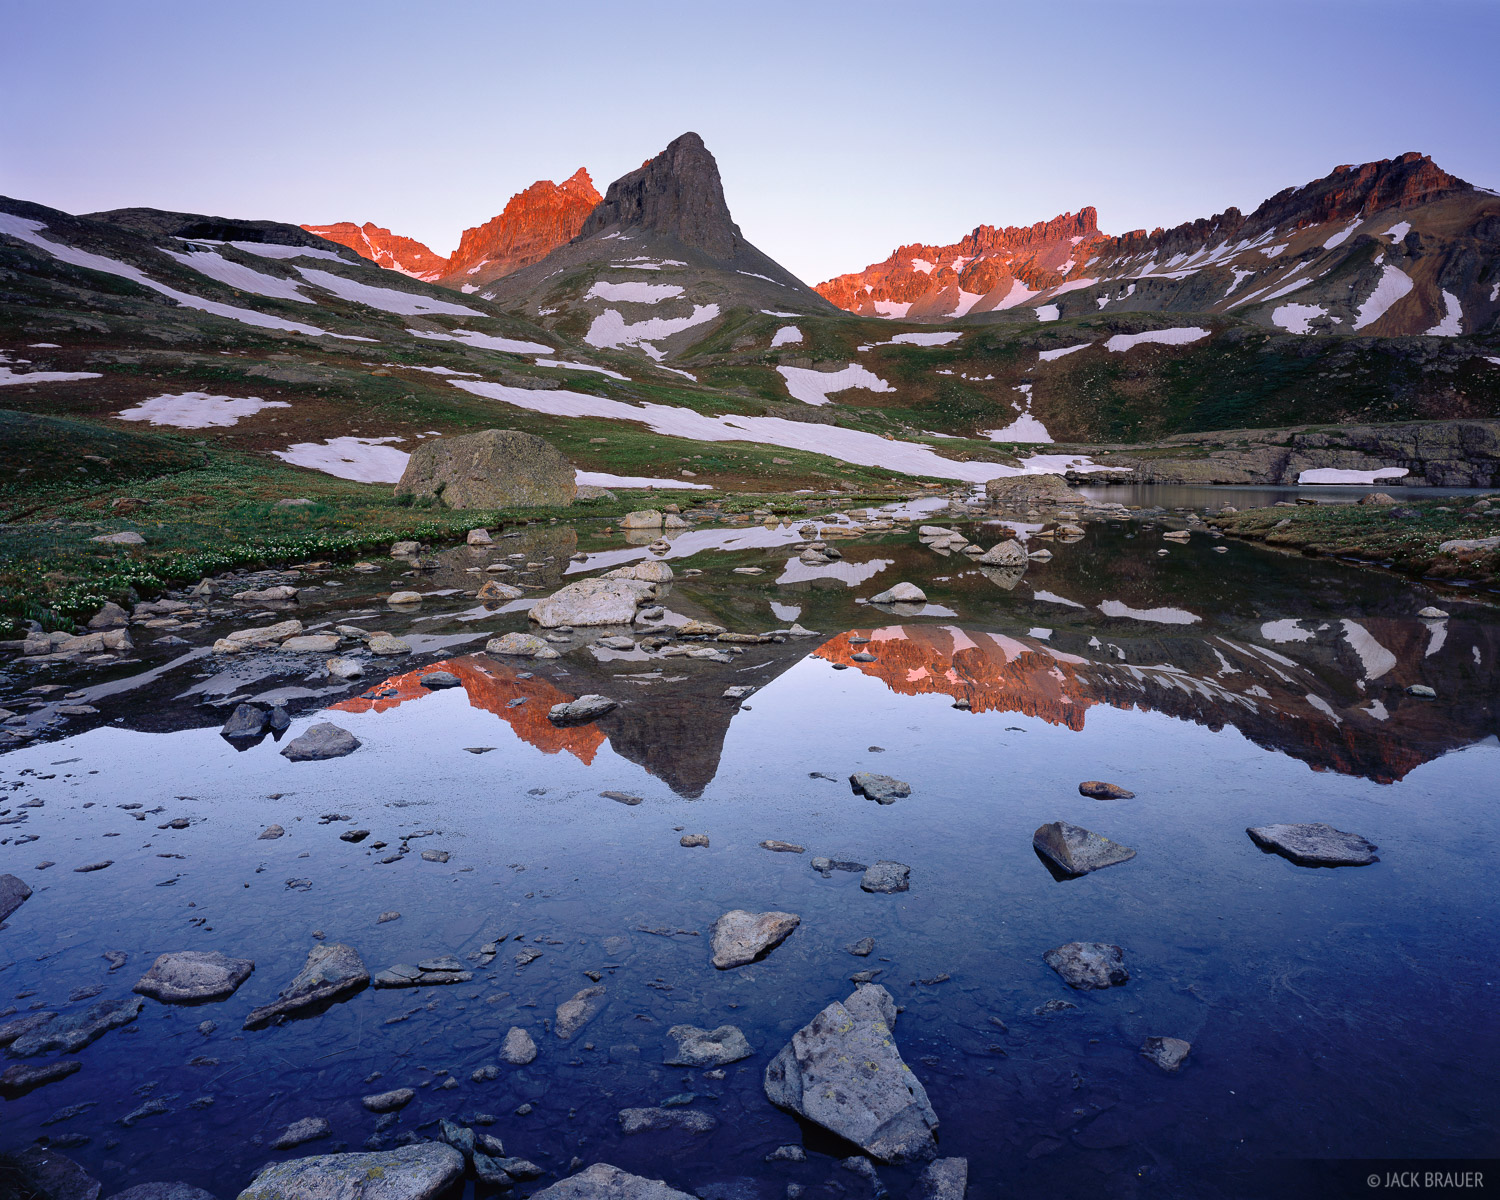 Ice Lakes Basin, reflection, San Juan Mountains, Colorado, photo